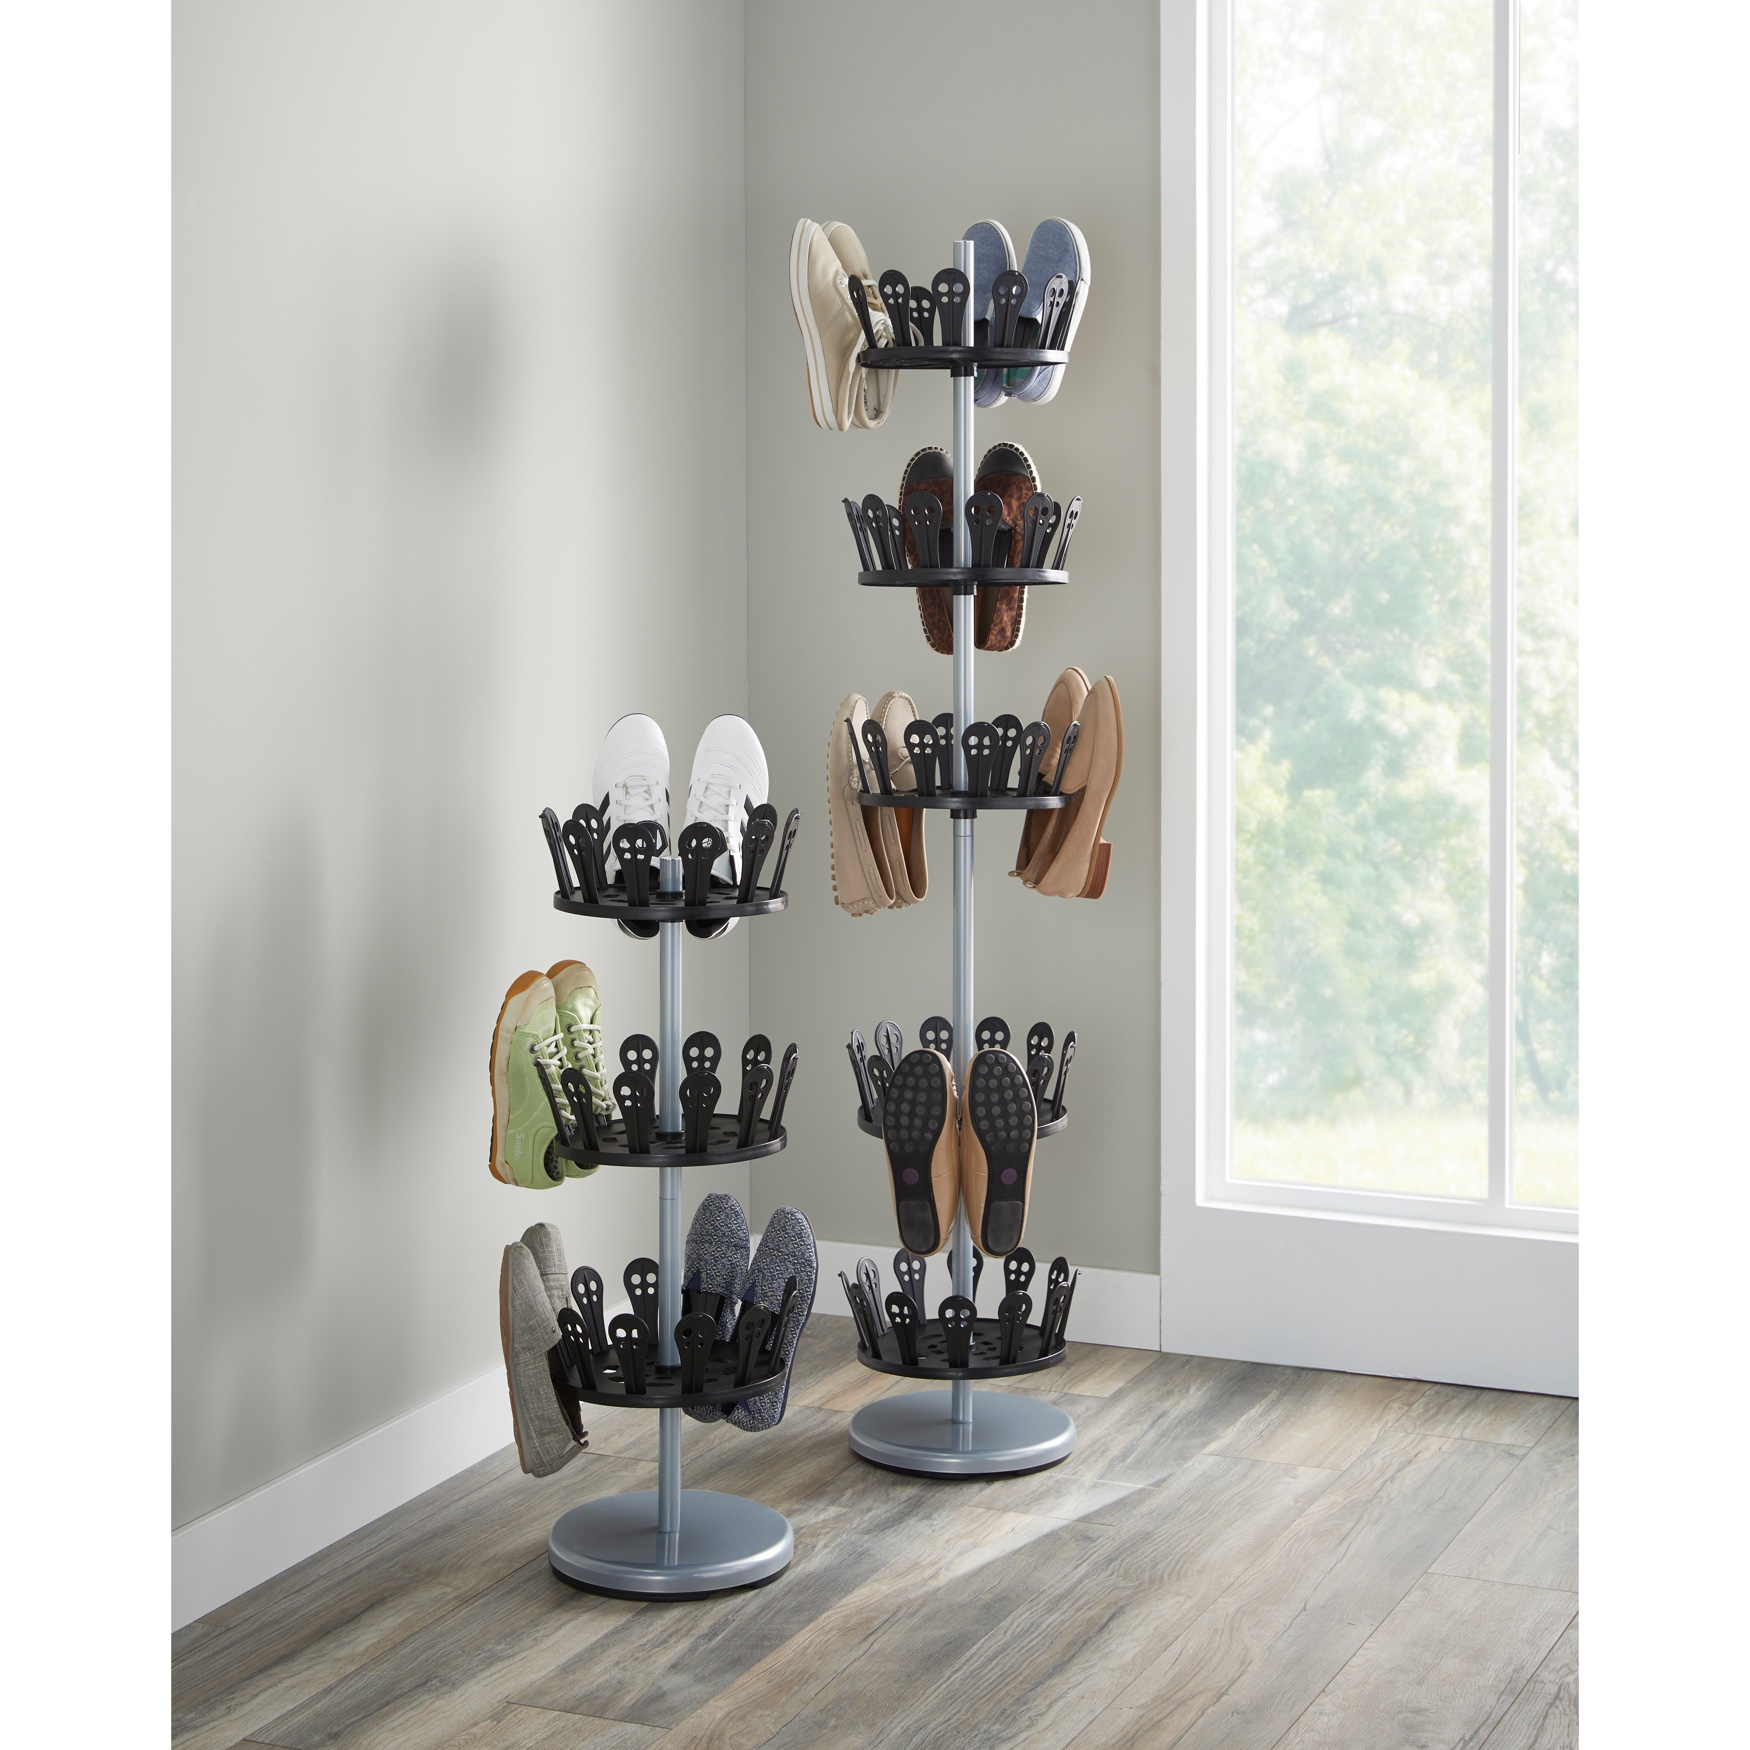 Revolving Shoe Rack Collection,